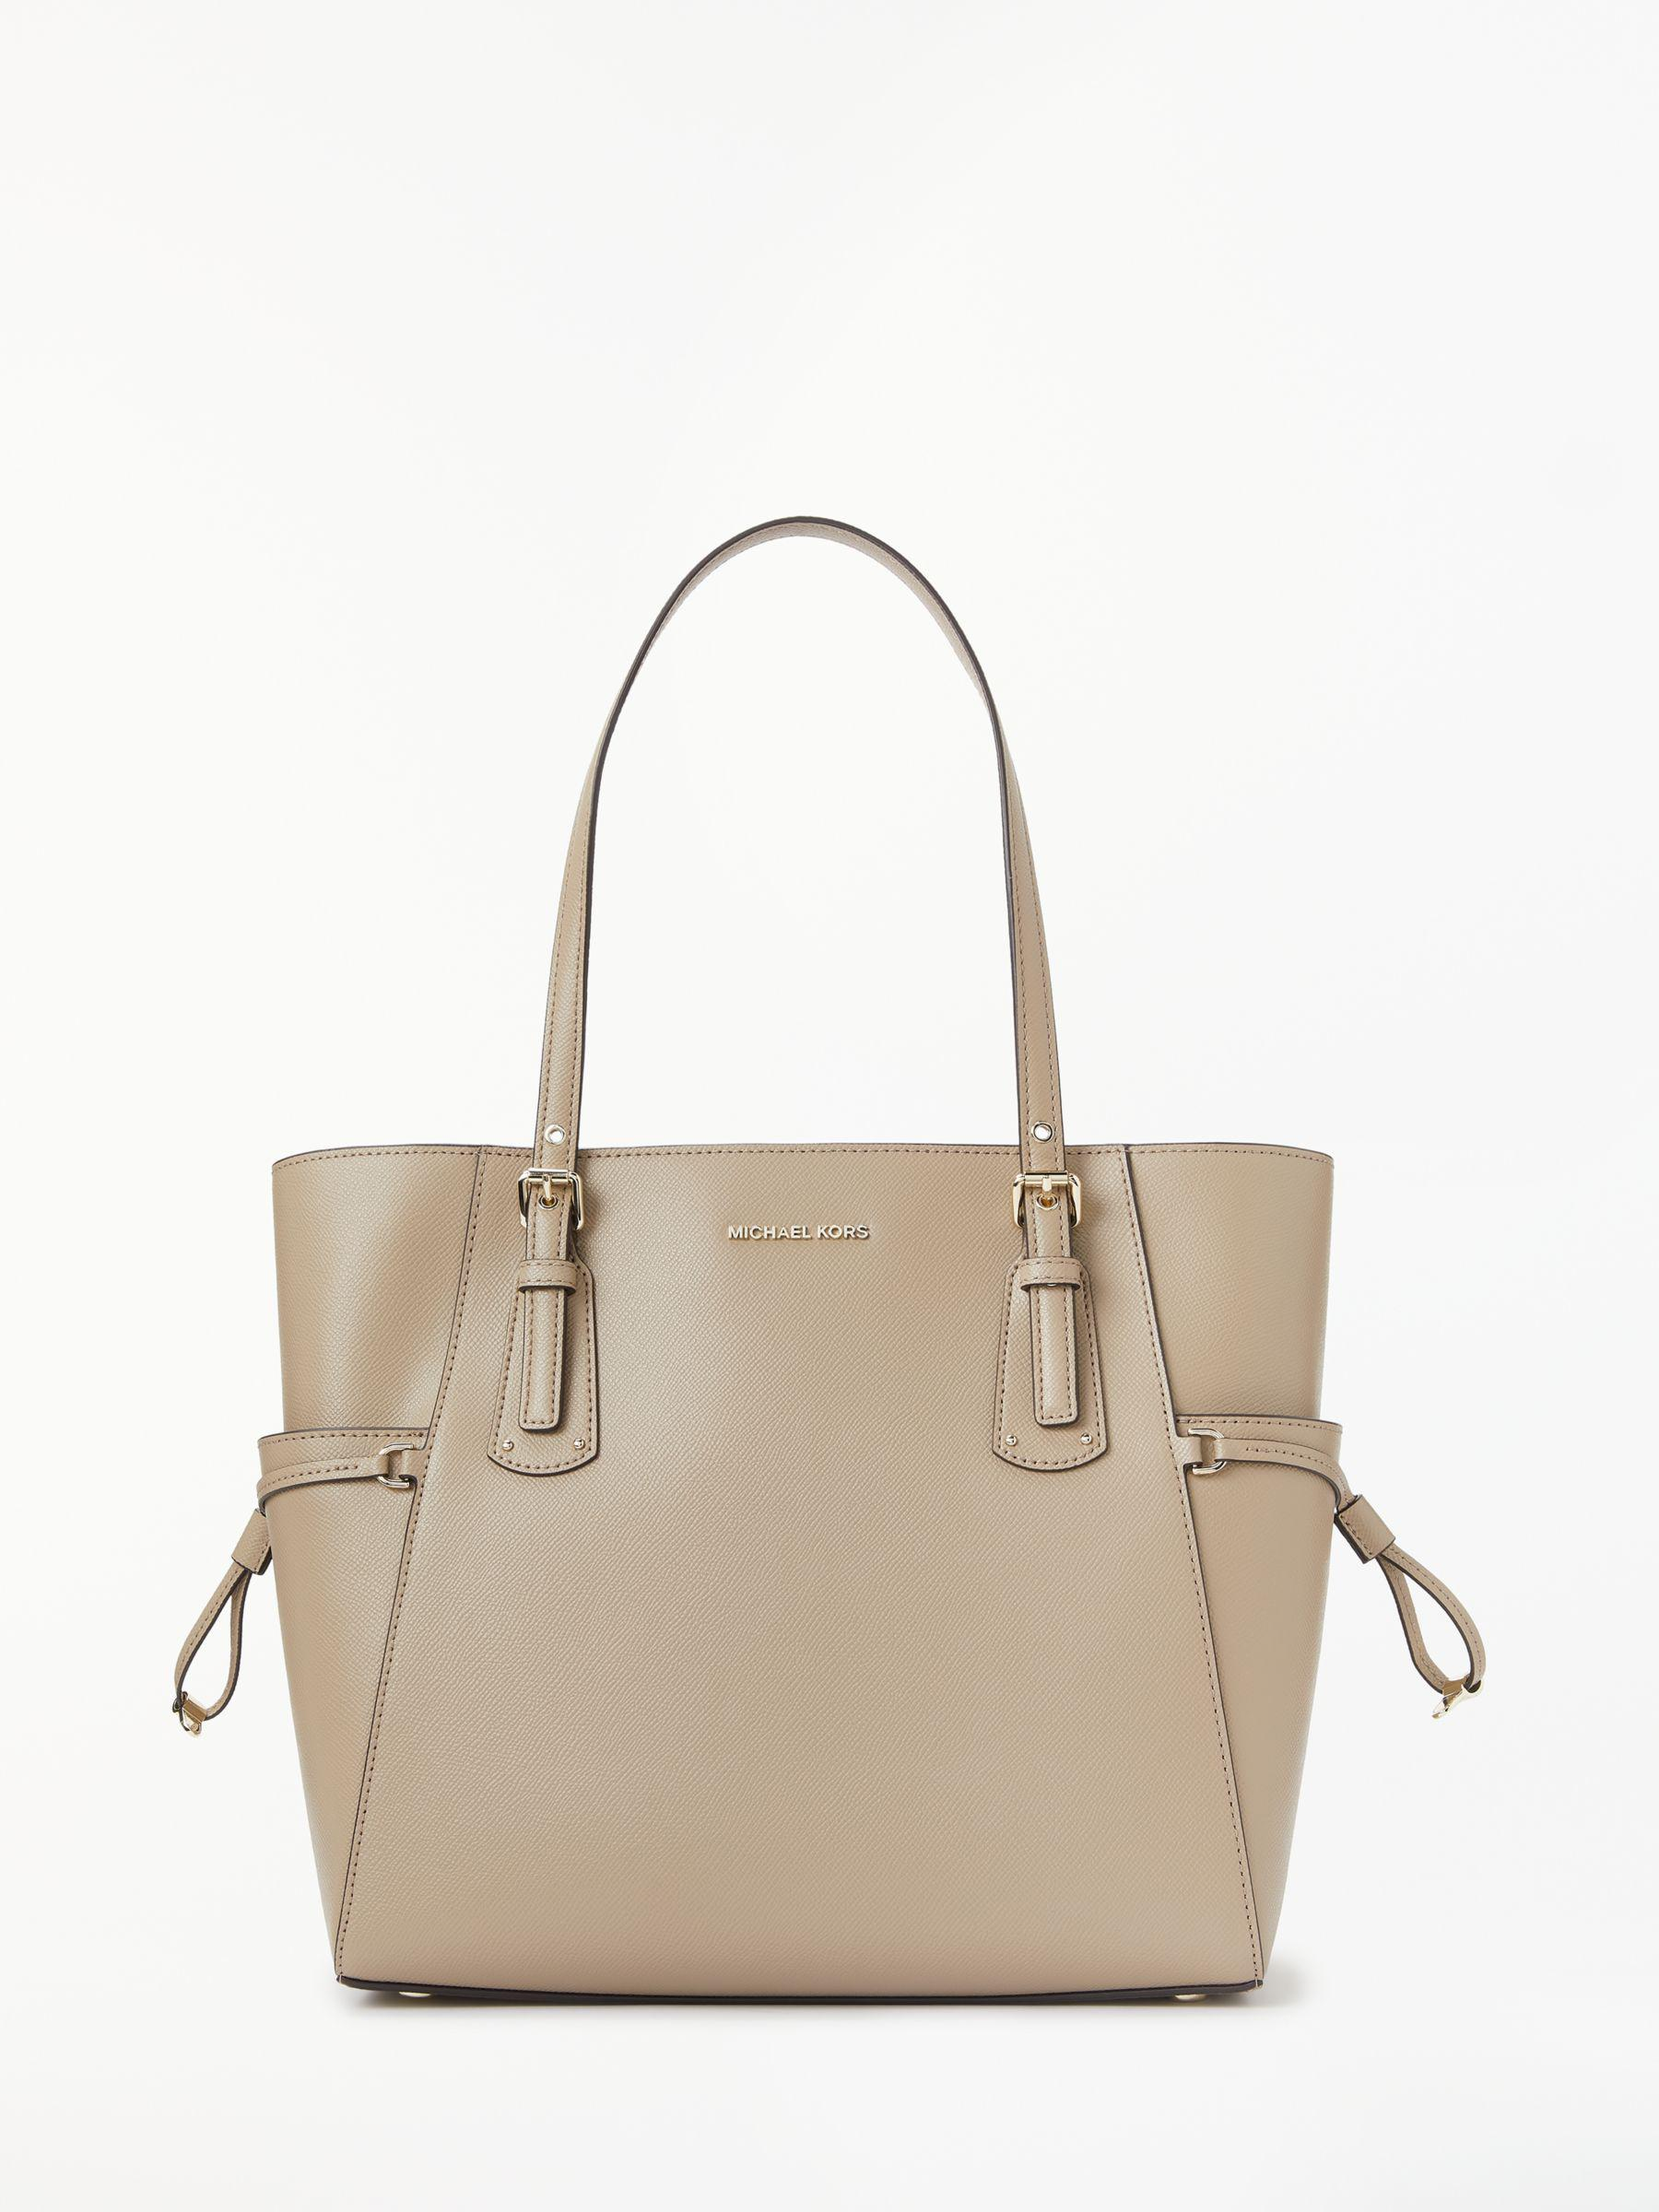 7601215948f5 Michael Kors - Multicolor Michael Voyager East West Leather Tote Bag - Lyst.  View fullscreen